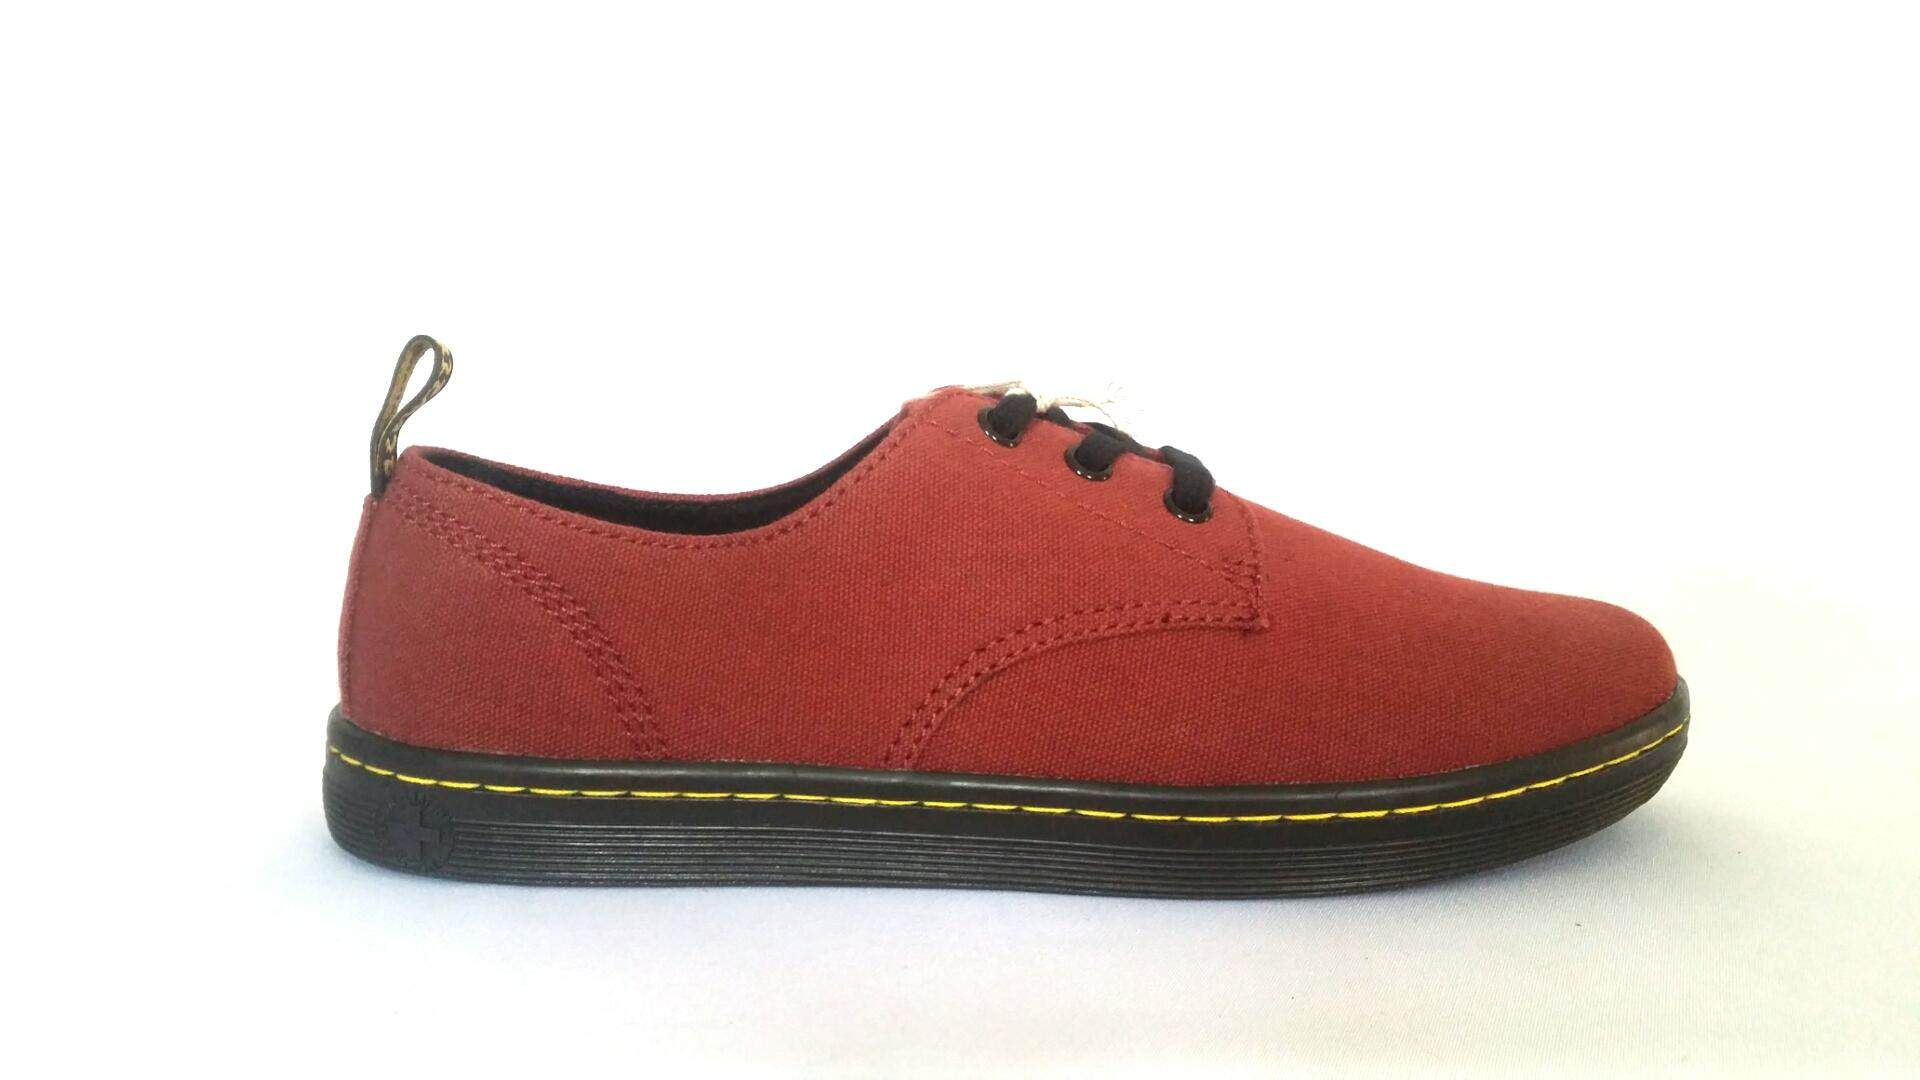 66894457faf Dr Martens - Buy Dr Martens at Best Price in Malaysia